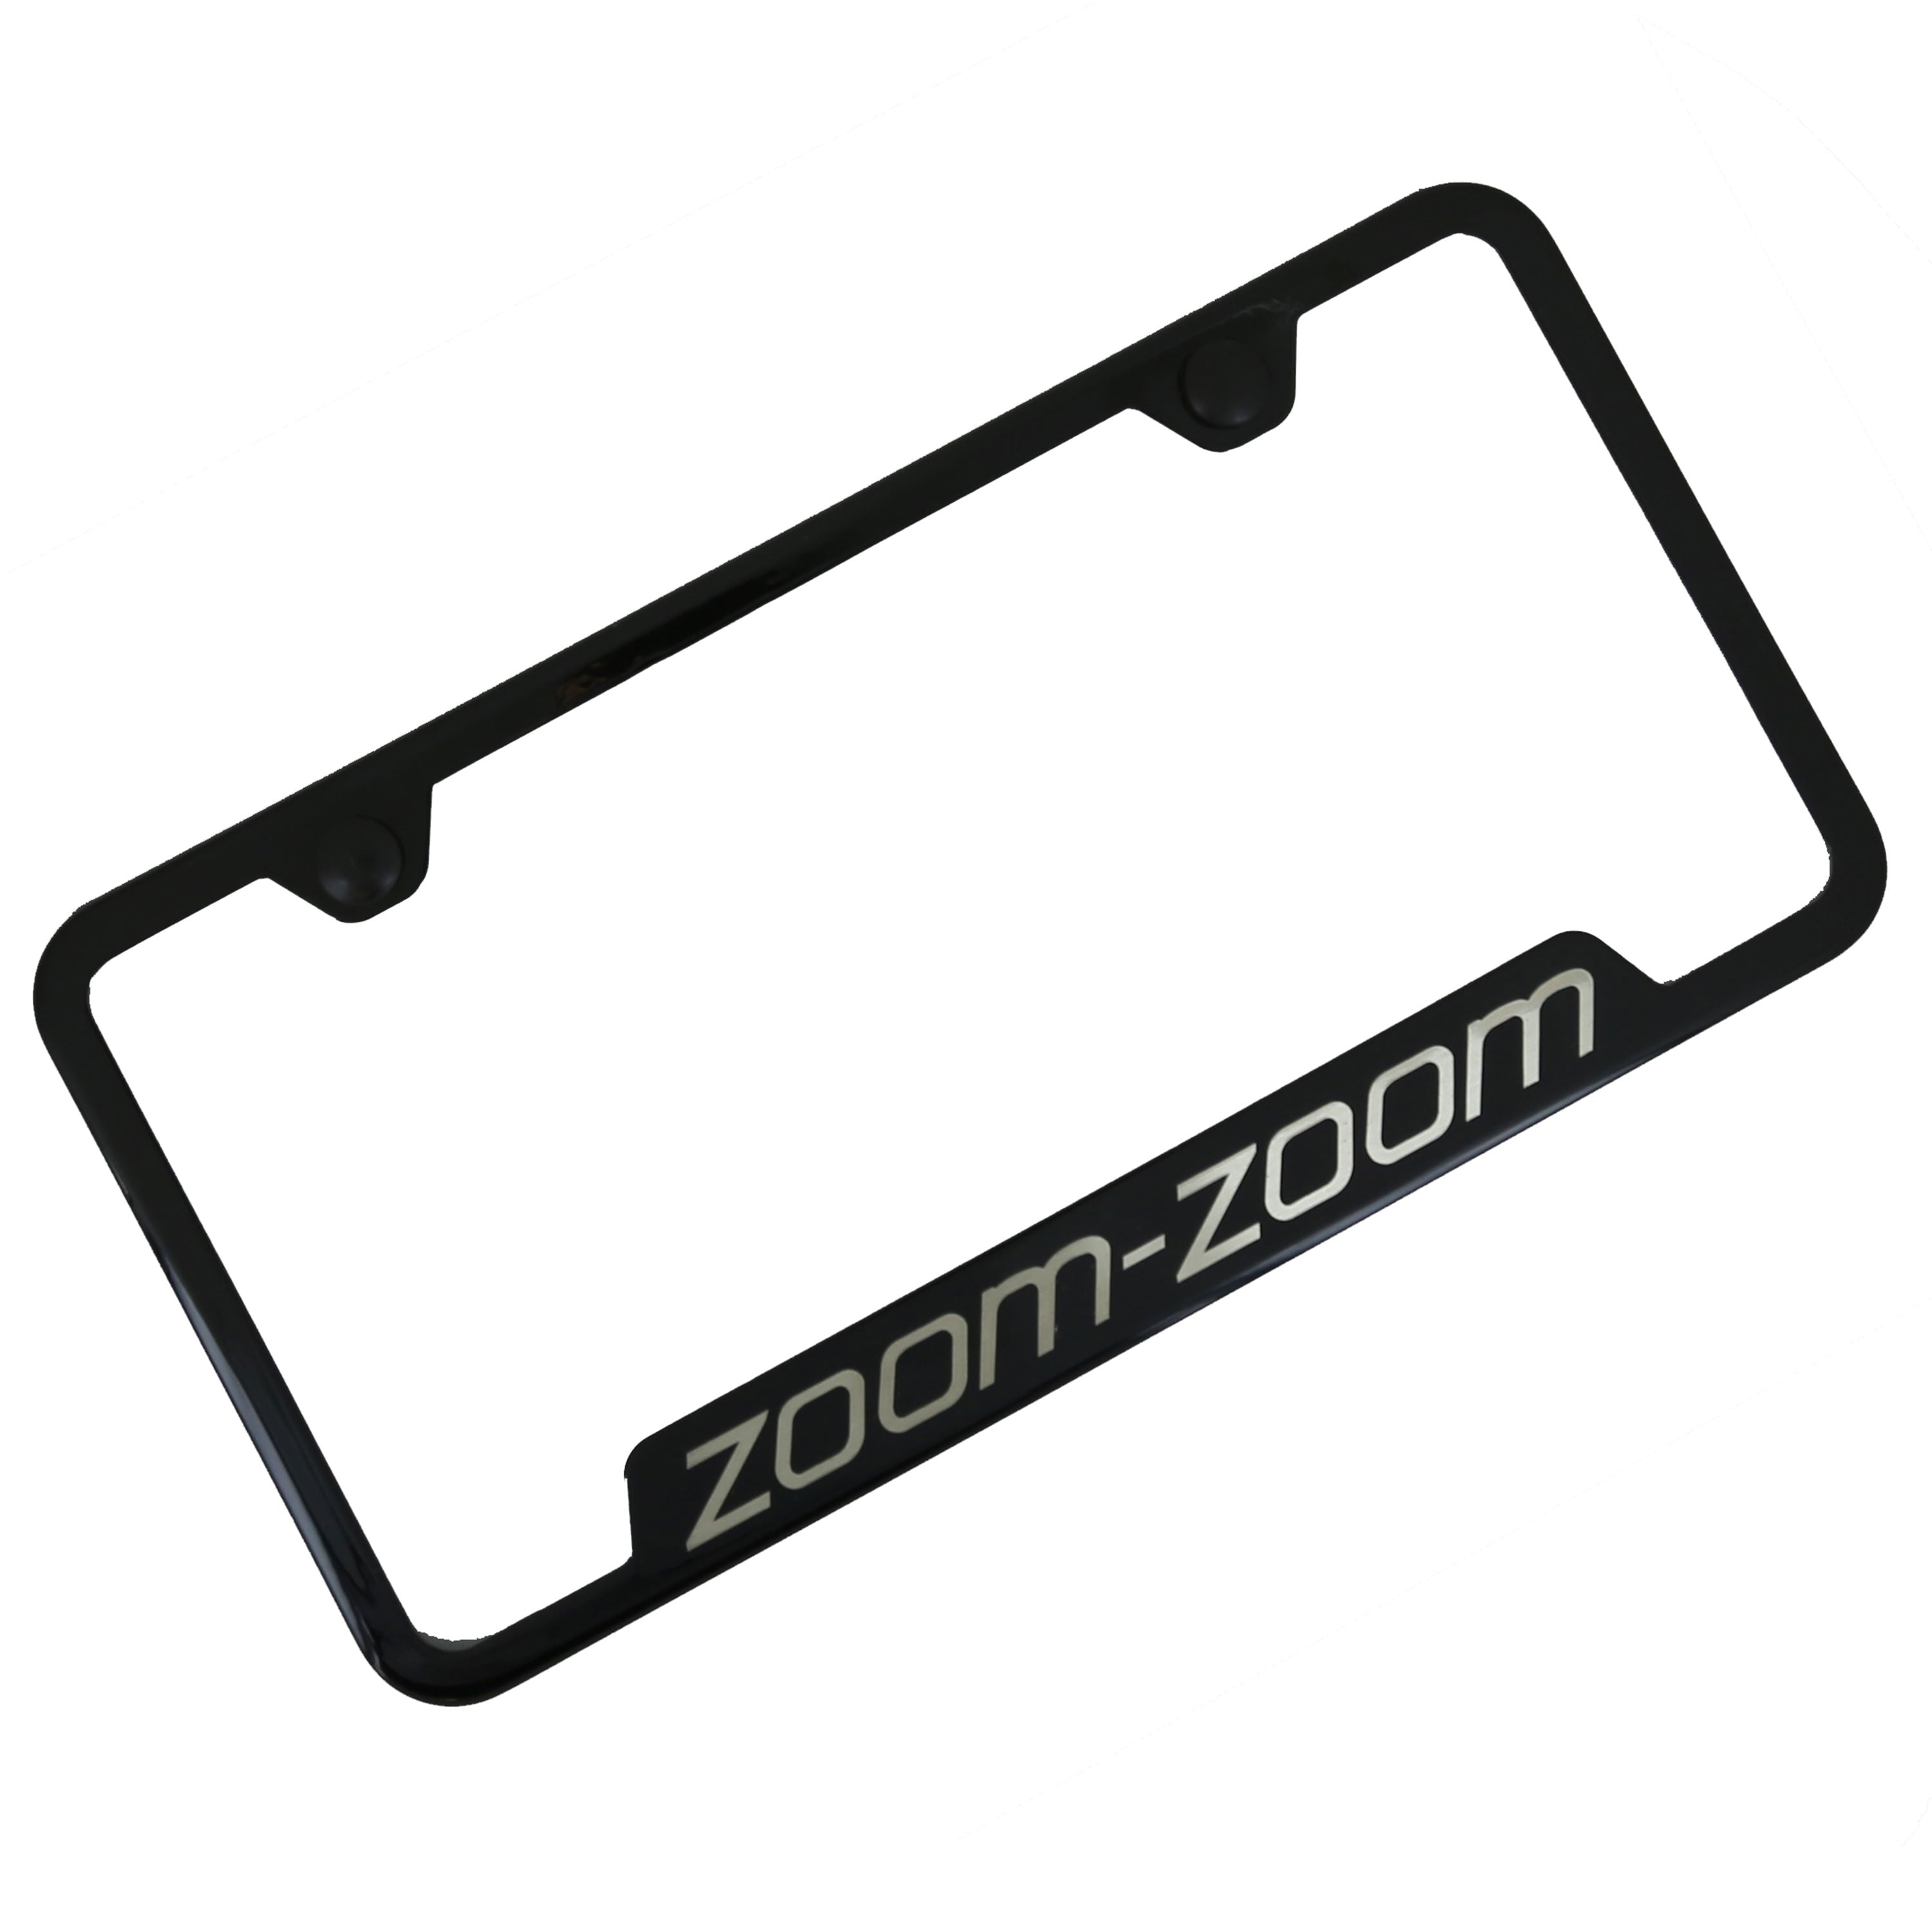 Mazda Zoom Zoom Cut Out License Plate Frame (Black) - Custom Werks